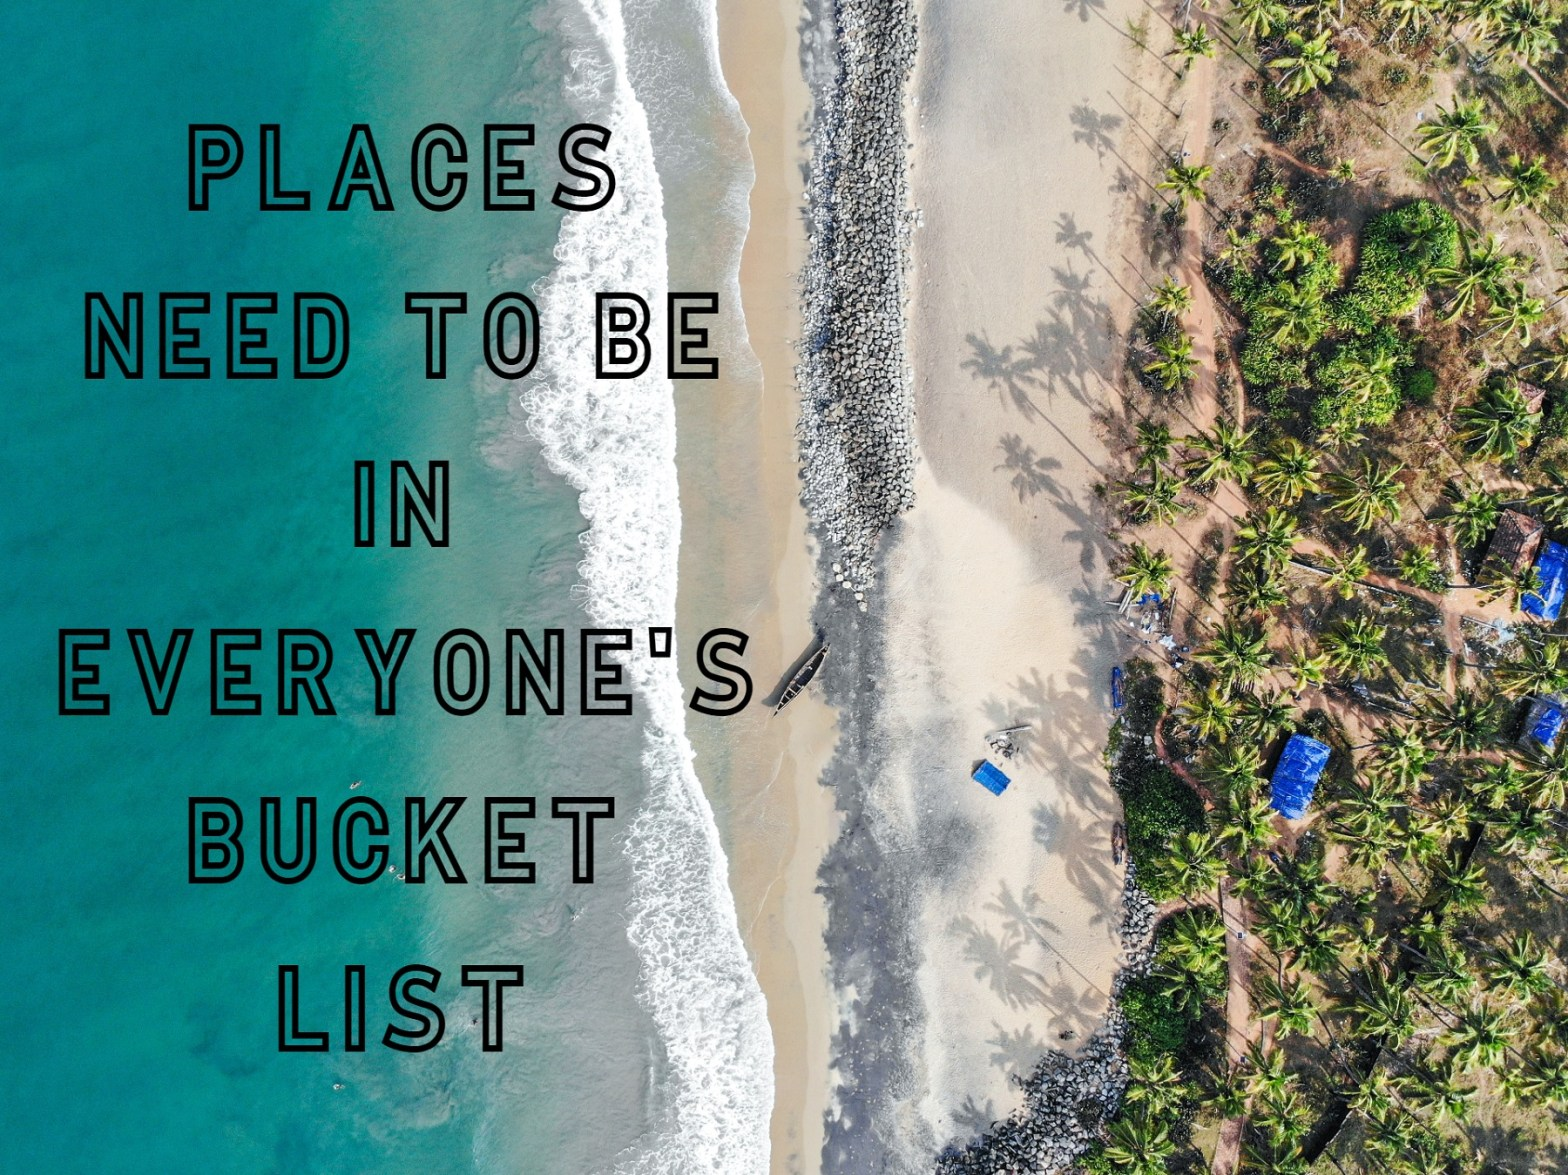 Places Need To Be In Everyone's Bucket List